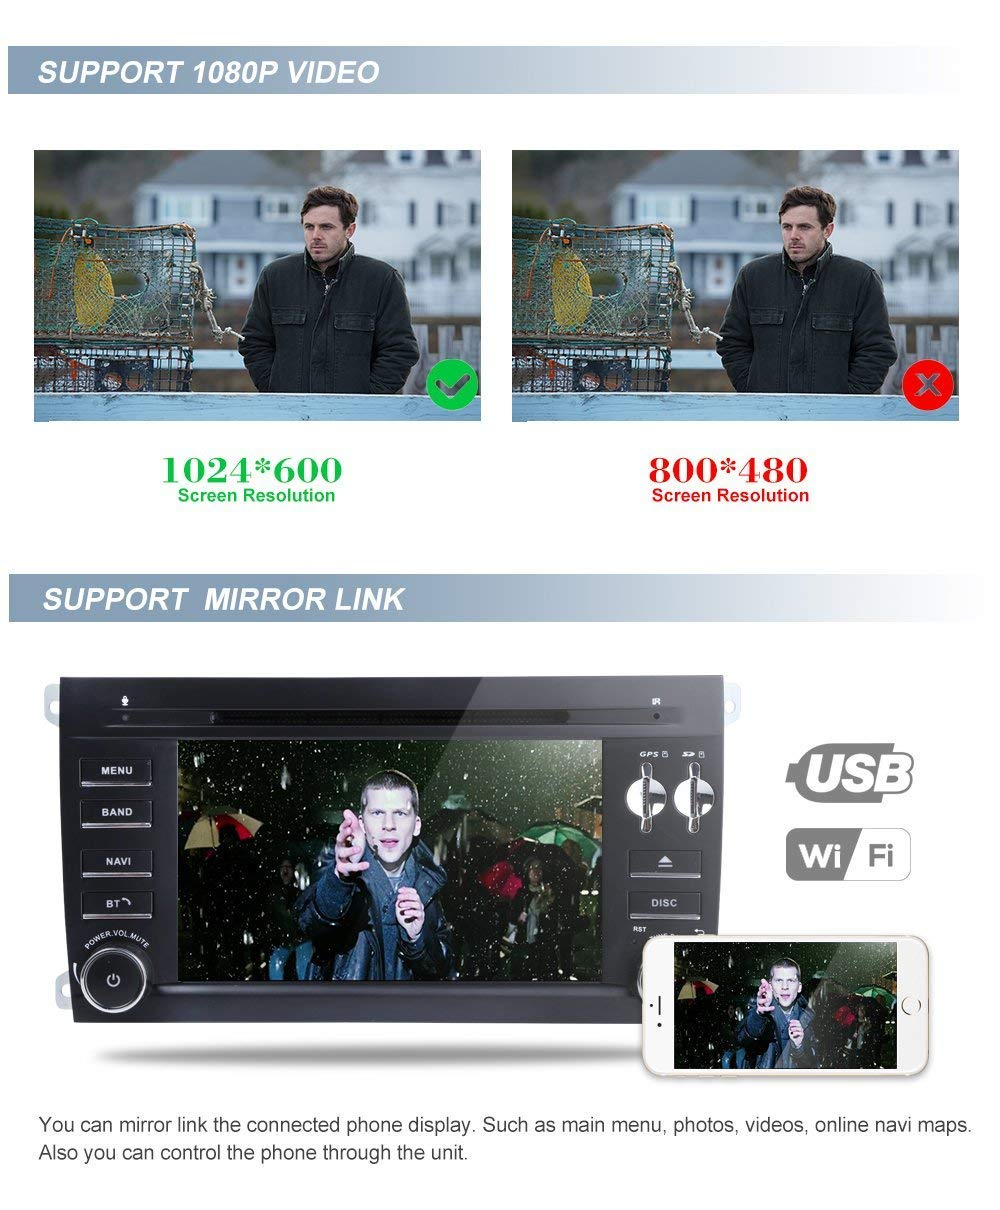 Amazon.com: MCWAUTO Compatible Porsche Cayenne 7 inch 2 Din Android 8.1 Quad Core Car Stereo 1024 HD Touchscreen Car Radio Receiver DVD GPS Navigation Free ...